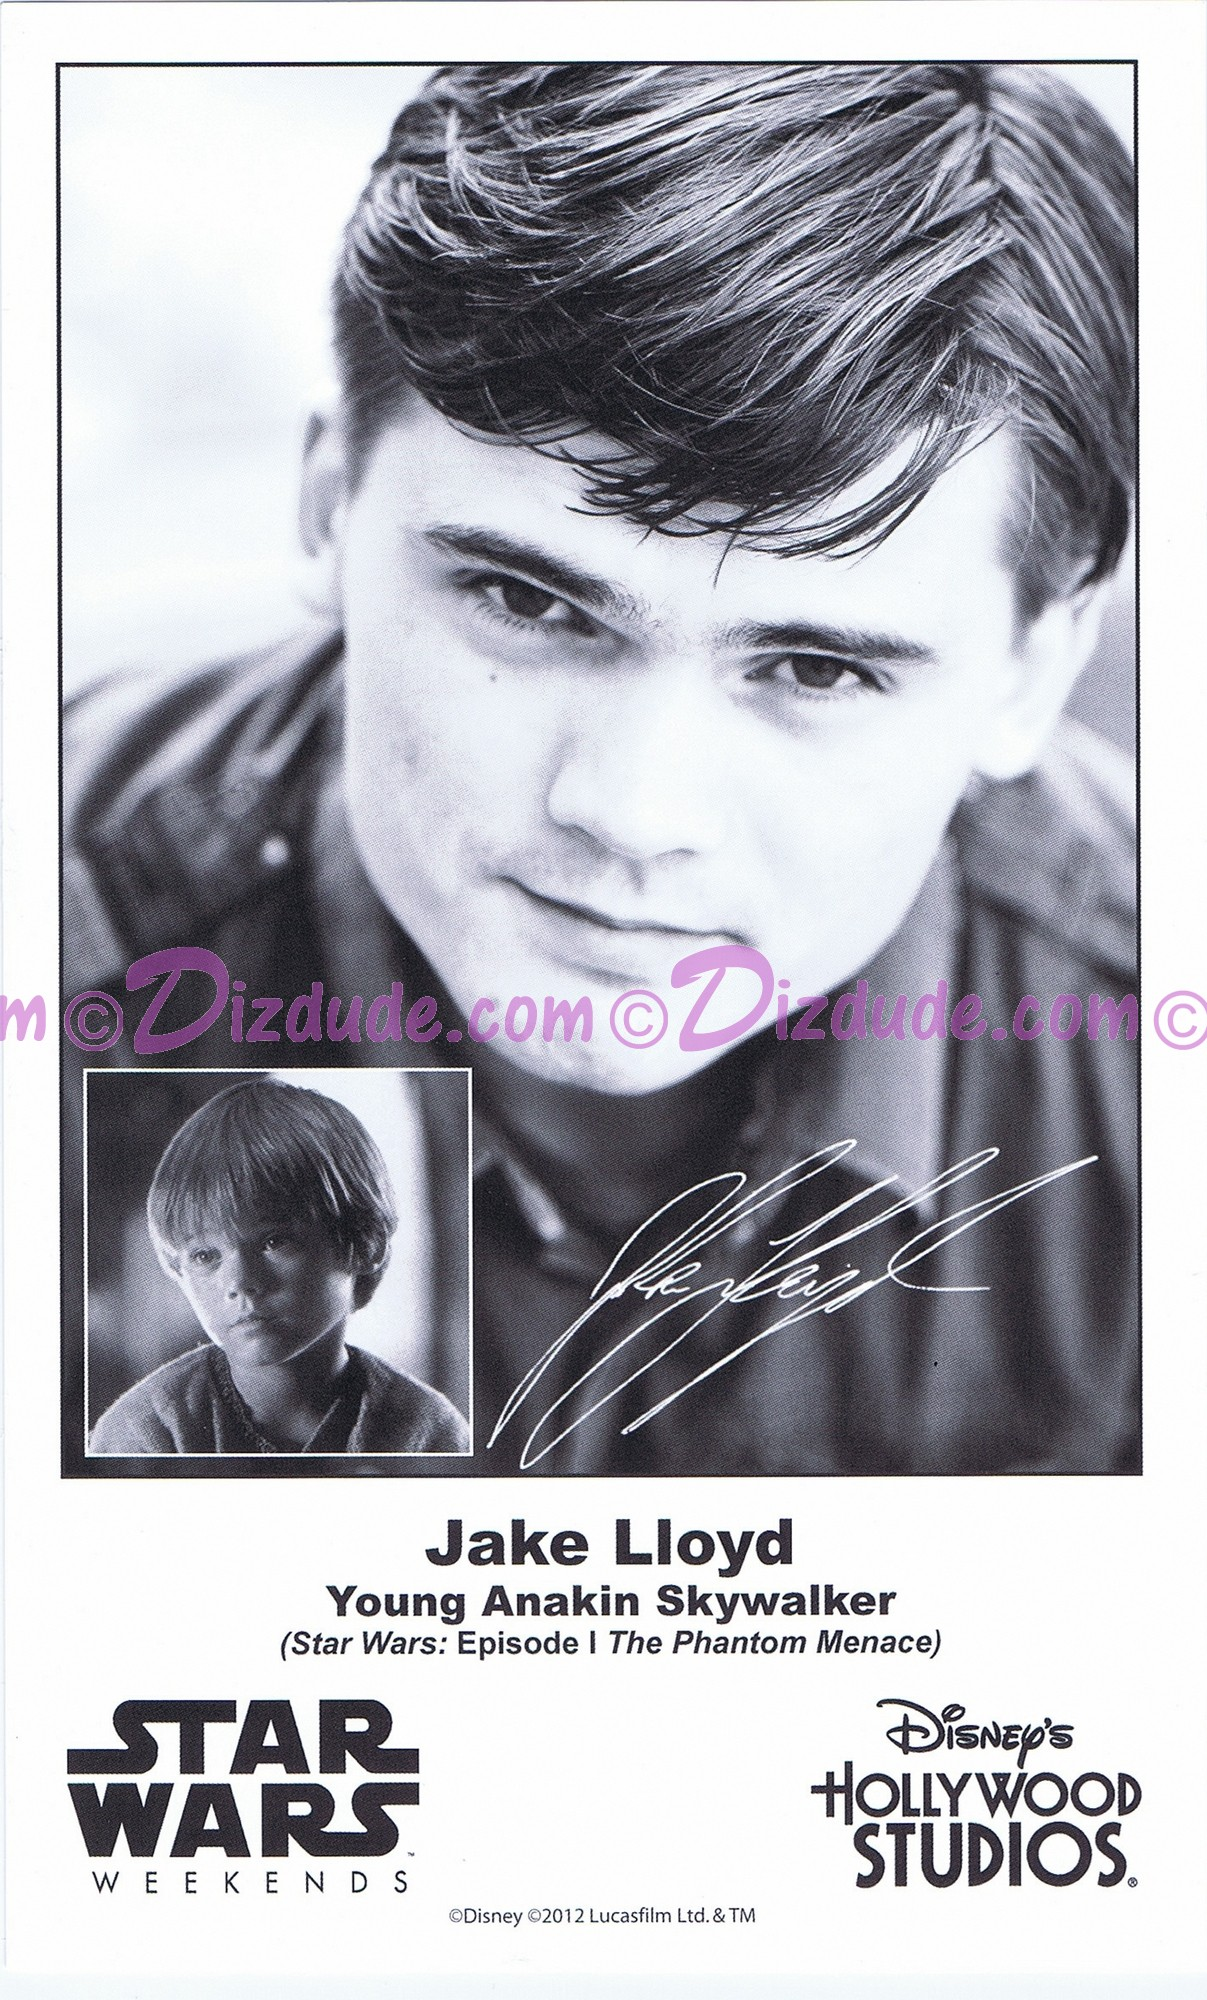 Jake Lloyd who played Young Anakin Skywalker Presigned Official Star Wars Weekends 2012 Celebrity Collector Photo